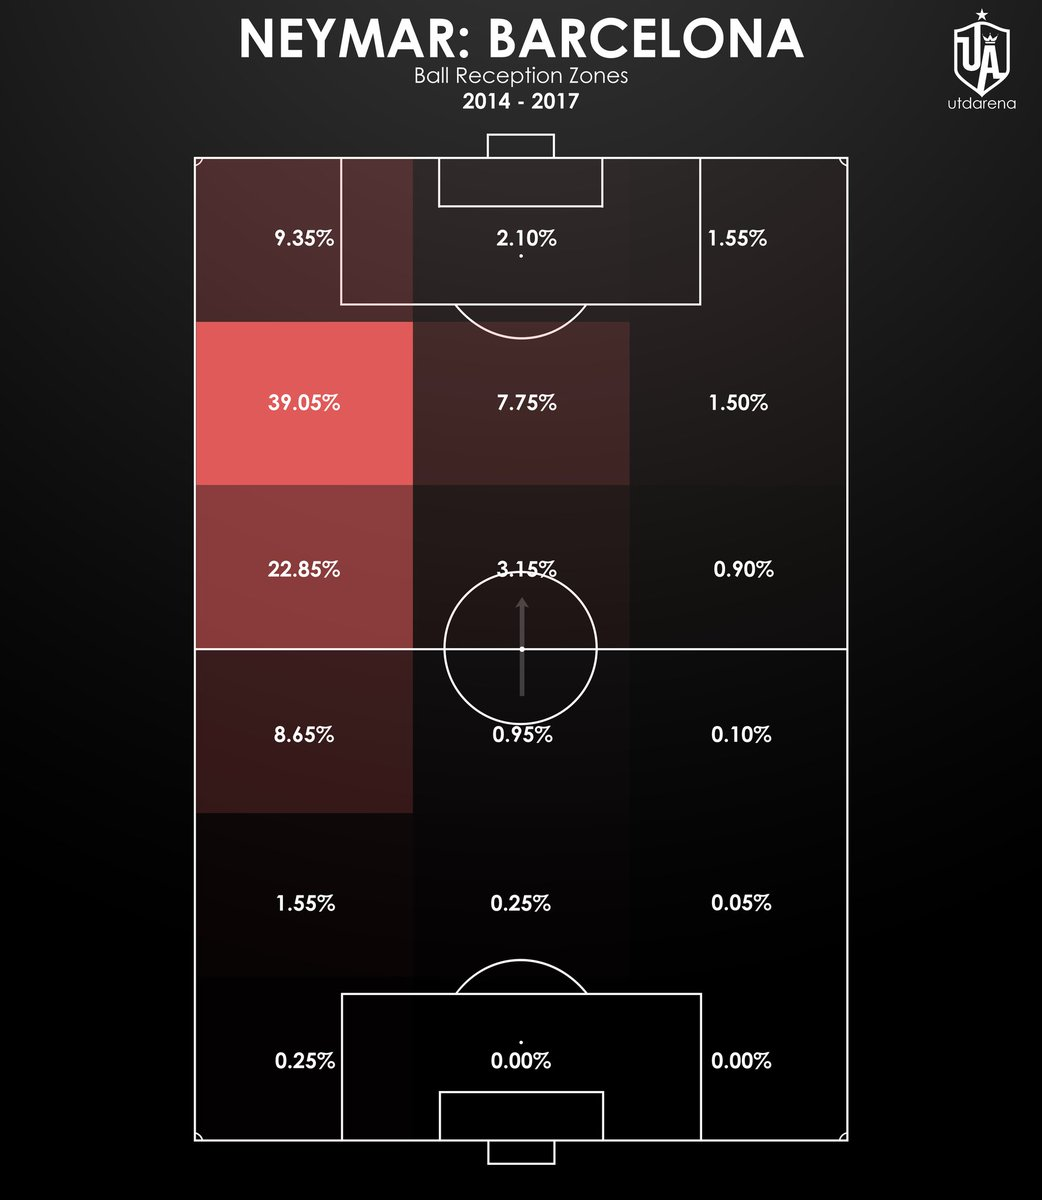 Neymar: Barcelona vs Paris Saint-Germain — Ball Reception Zones  At Barça, Neymar was almost exclusively a left winger. In France, he has drifted further in than he did in Spain with solid zones in the central areas (almost 30%).  Evolve. https://t.co/0c5tk4d4iW